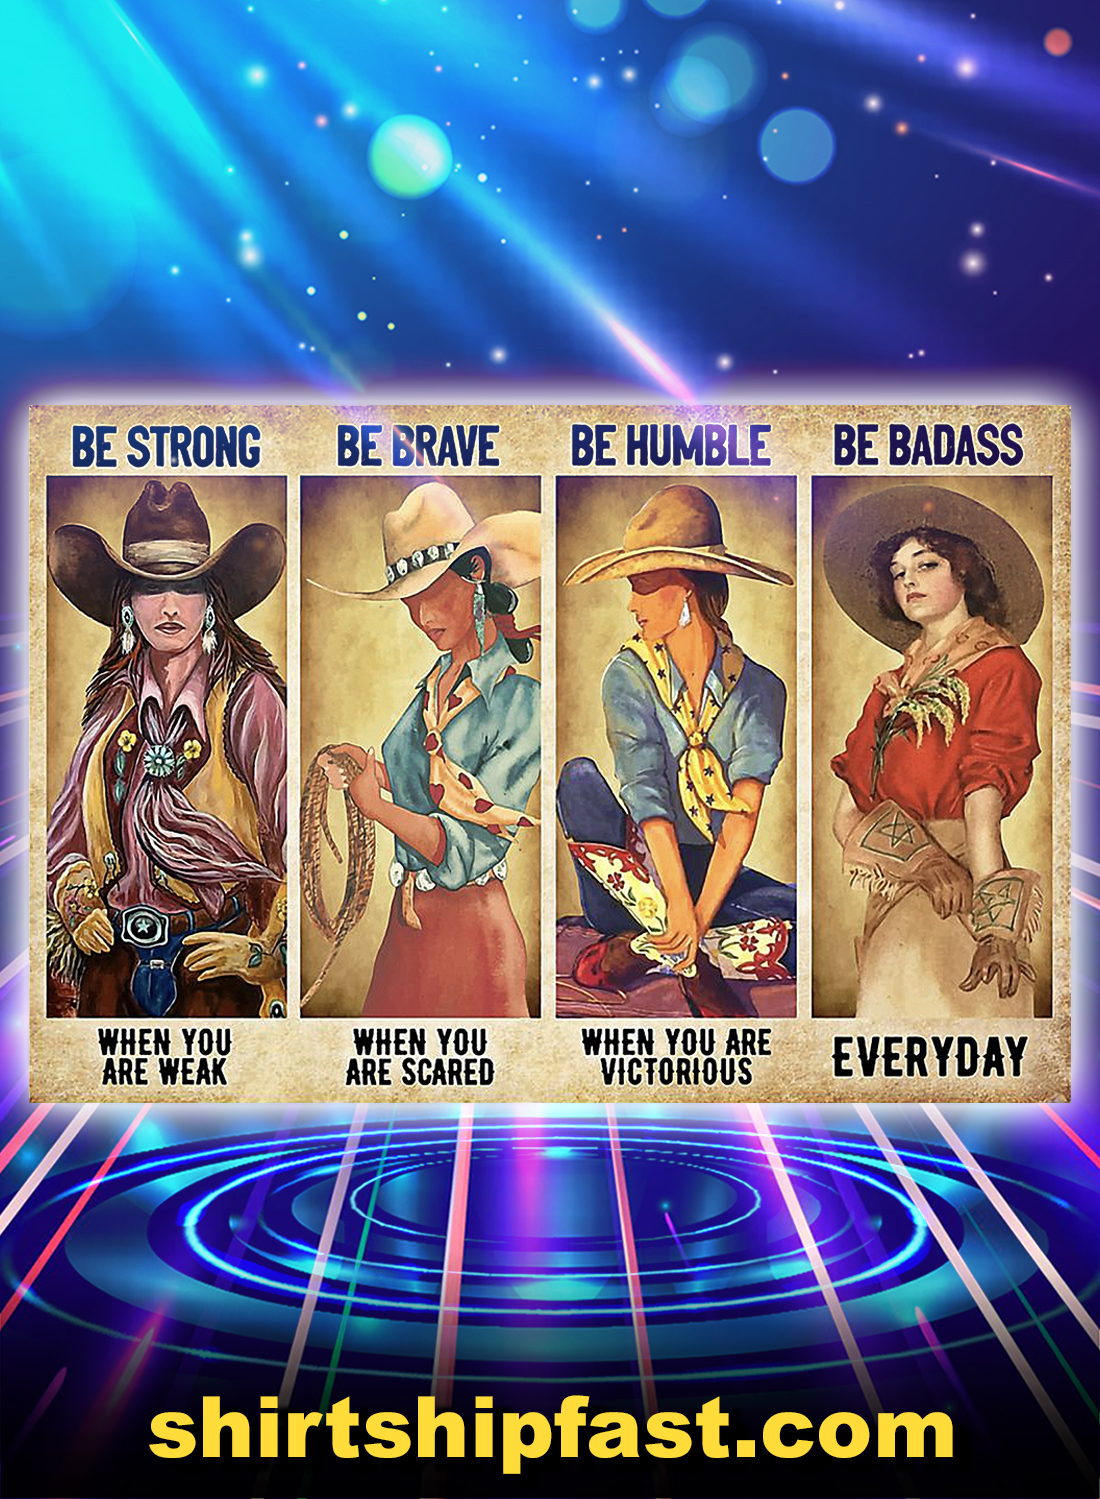 Cowgirl be strong be brave be humble be badass poster - A4